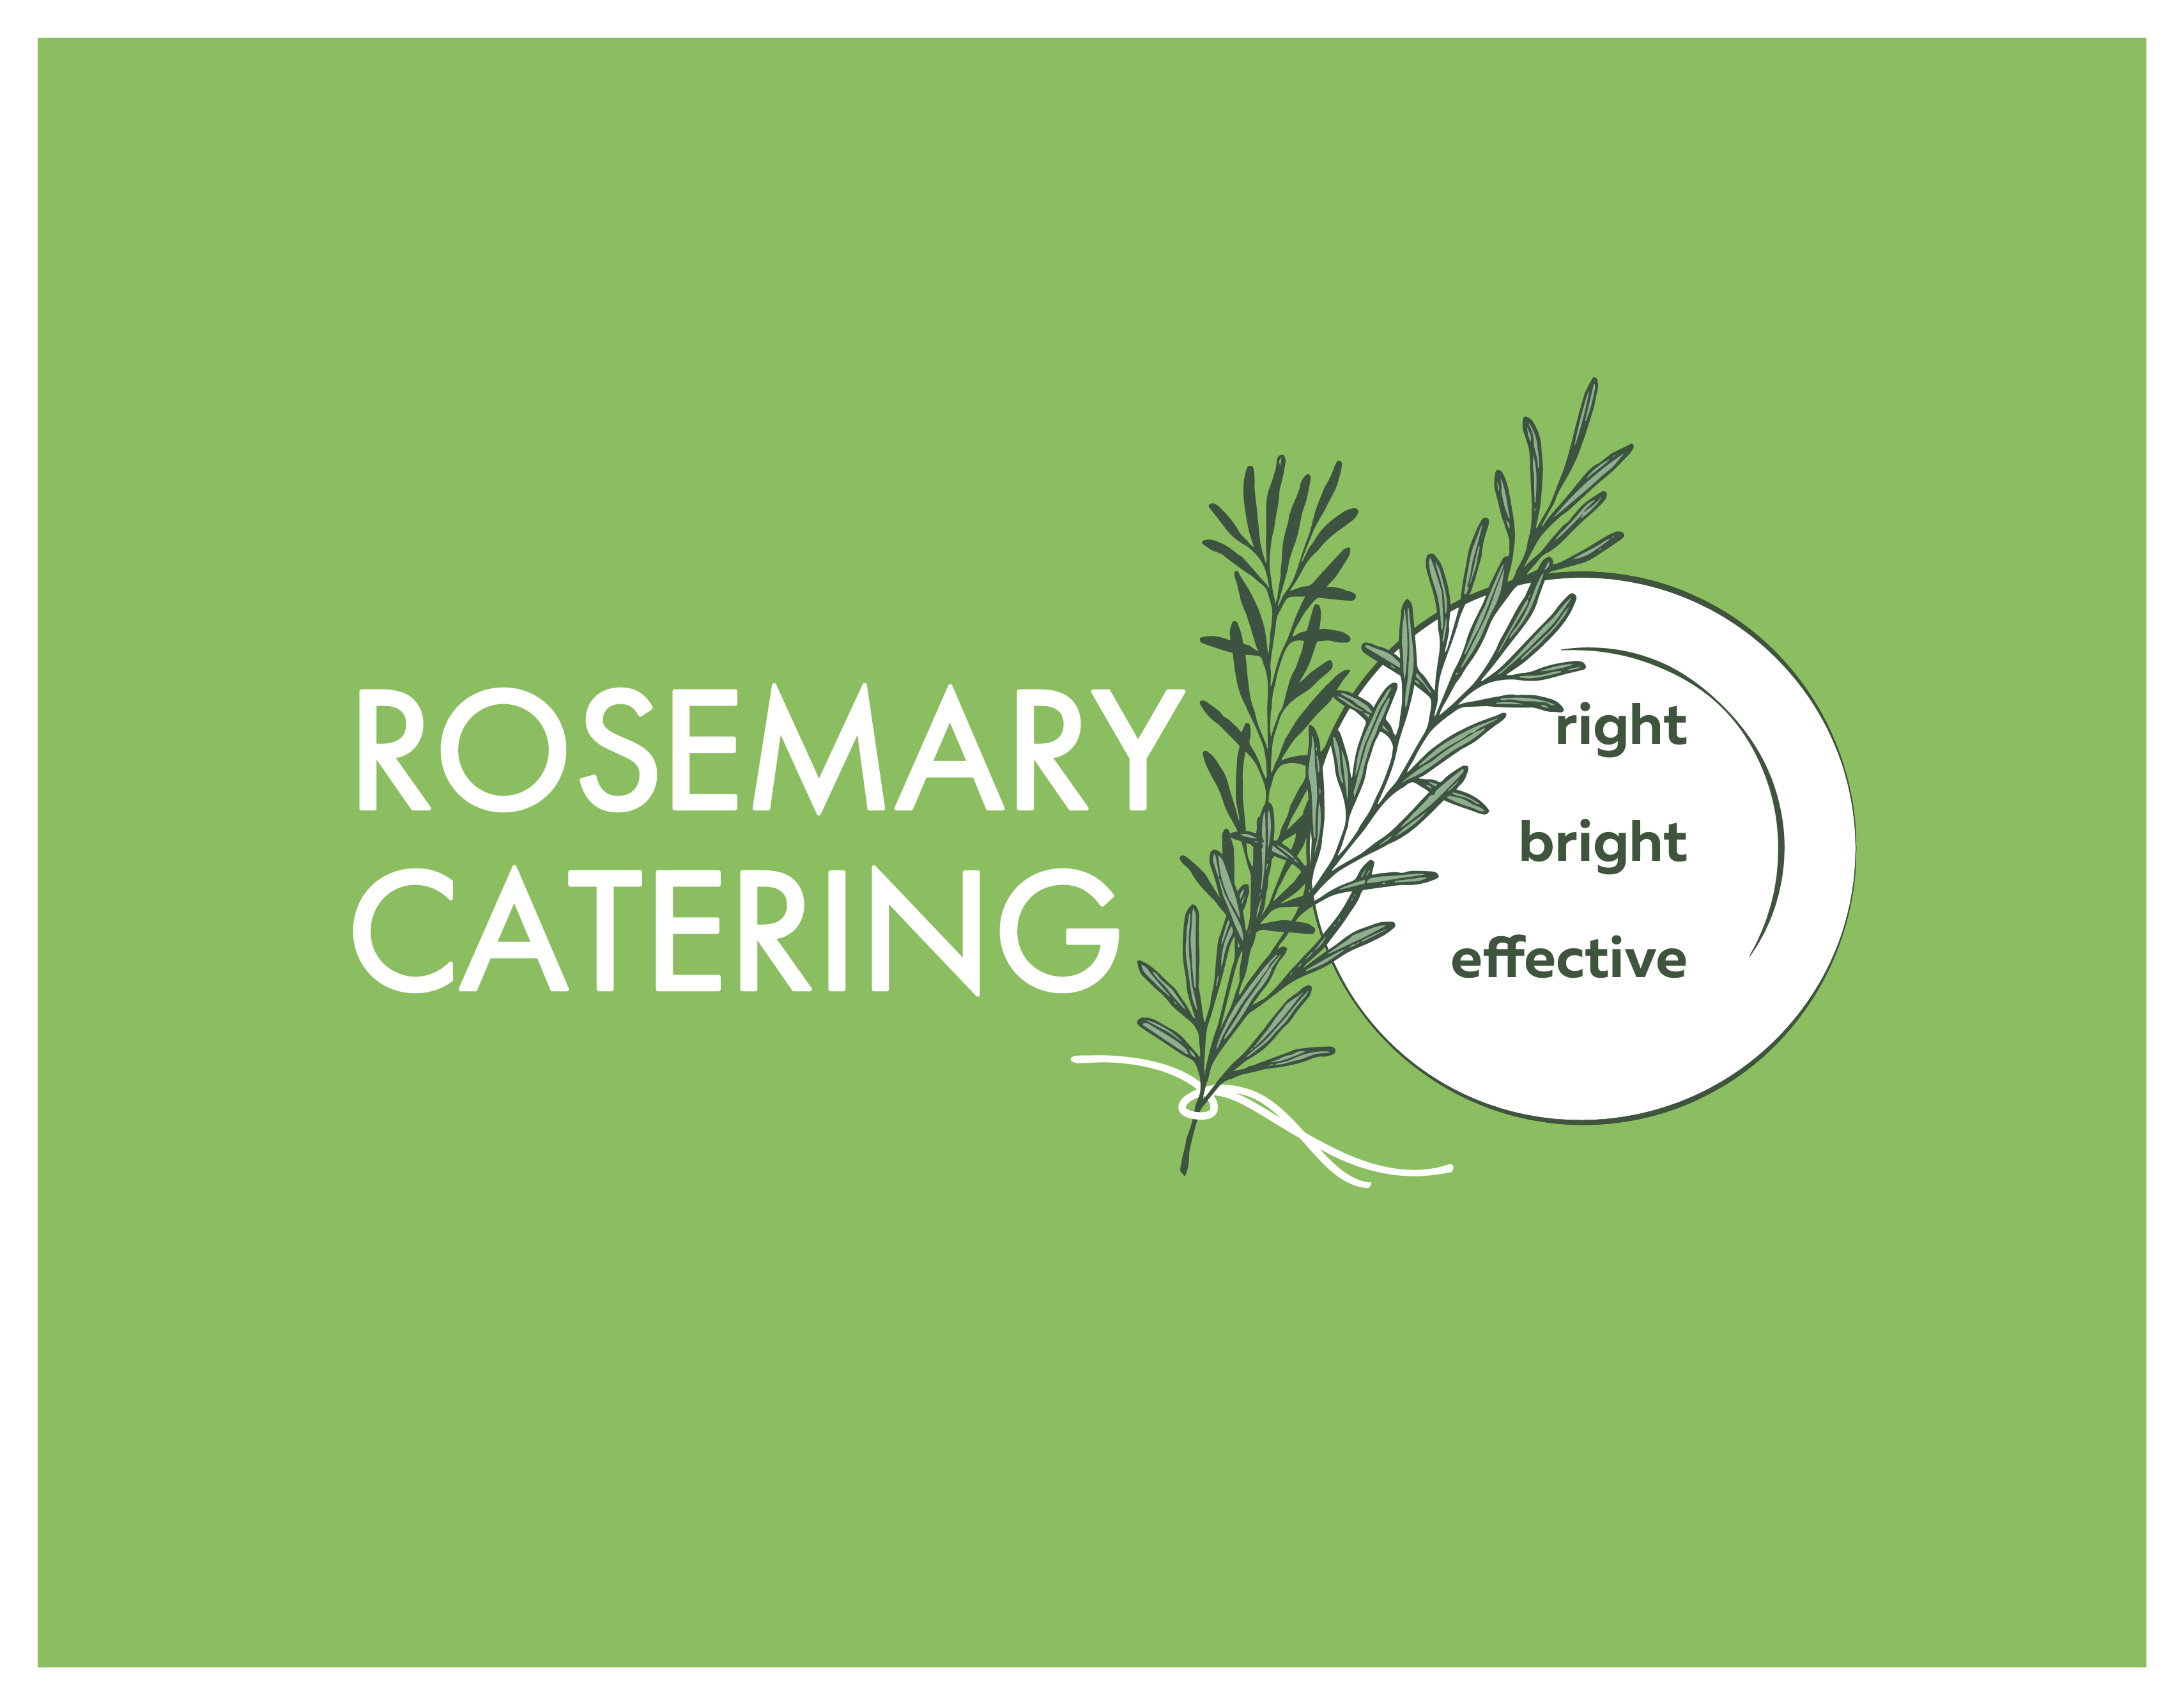 ROSEMARY CATERING